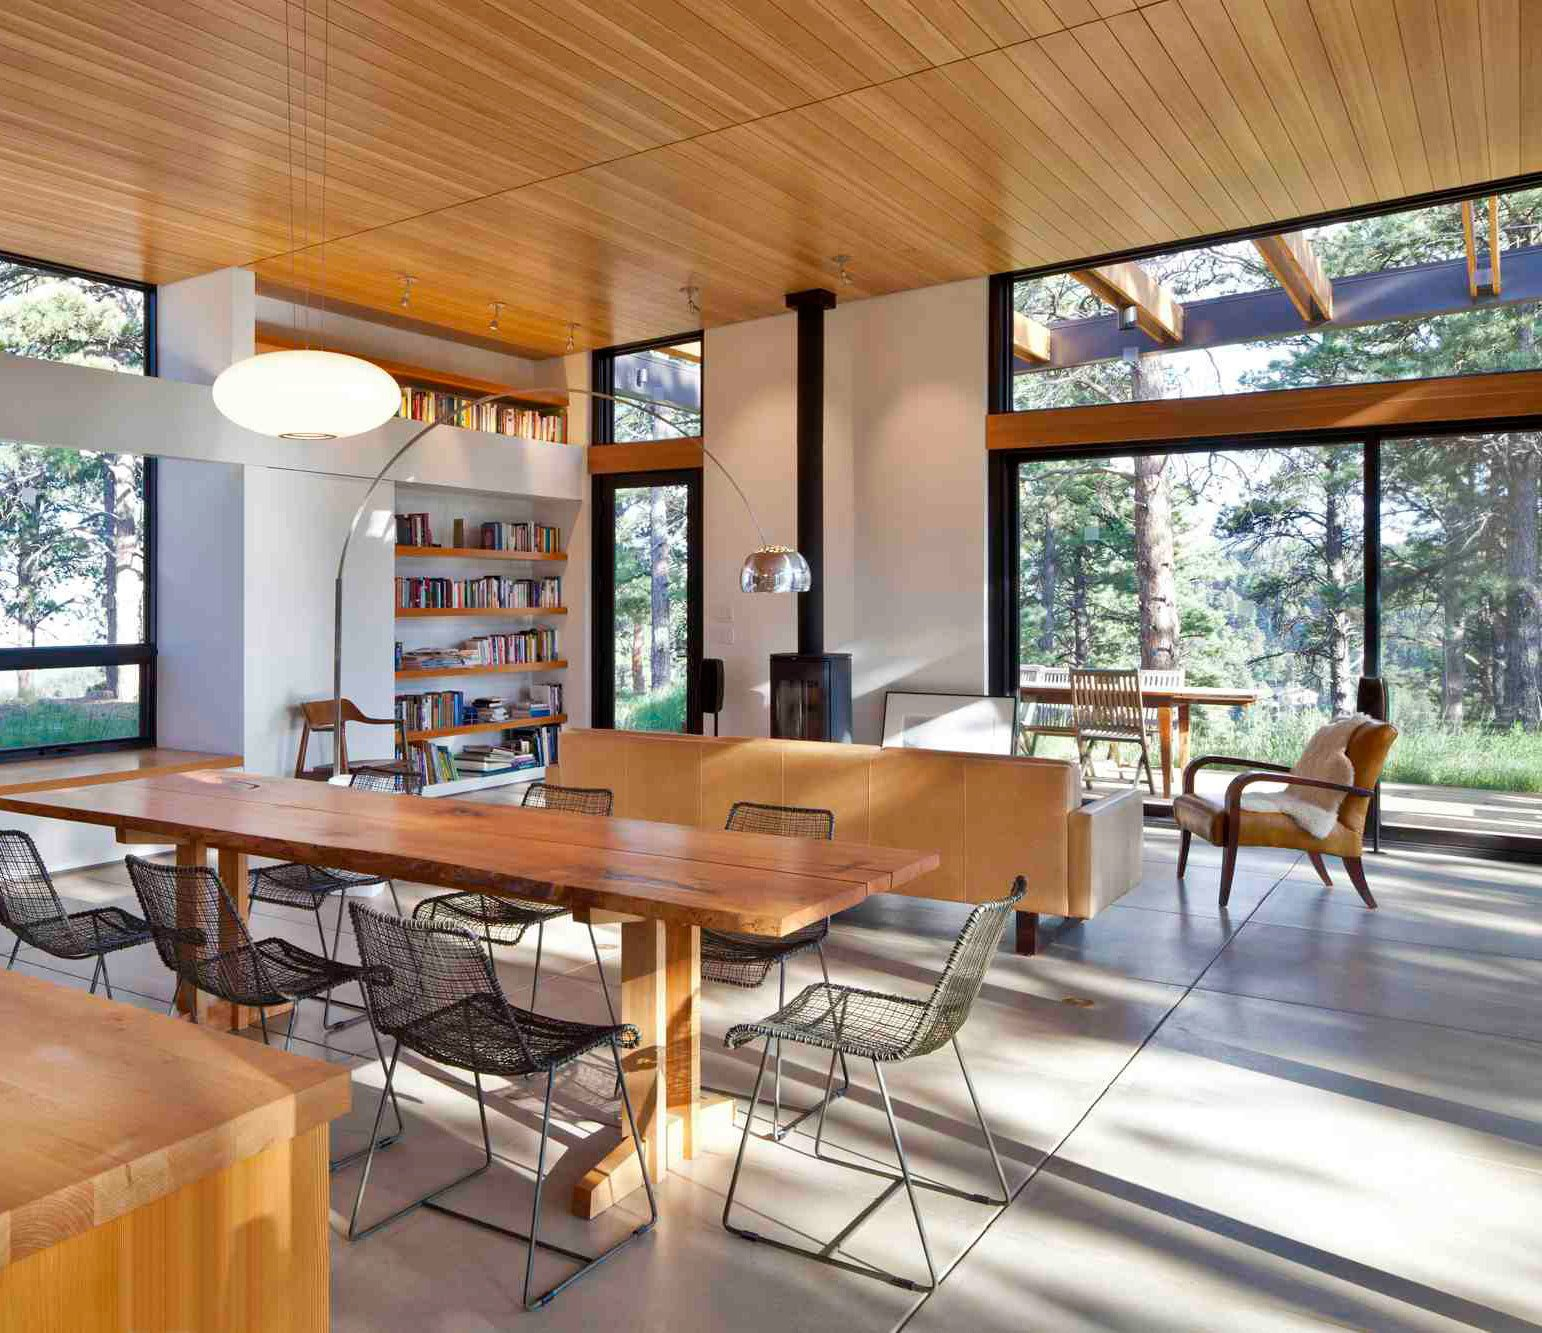 Tall, sliding glass panels extend along the west side of the house, including into the living area, which has views across the terrace and 35-acre wooded property. Built-in bookshelves, part of Dynia's thick-wall strategy, keep with the orderly design.   Photo by Ron Johnson.